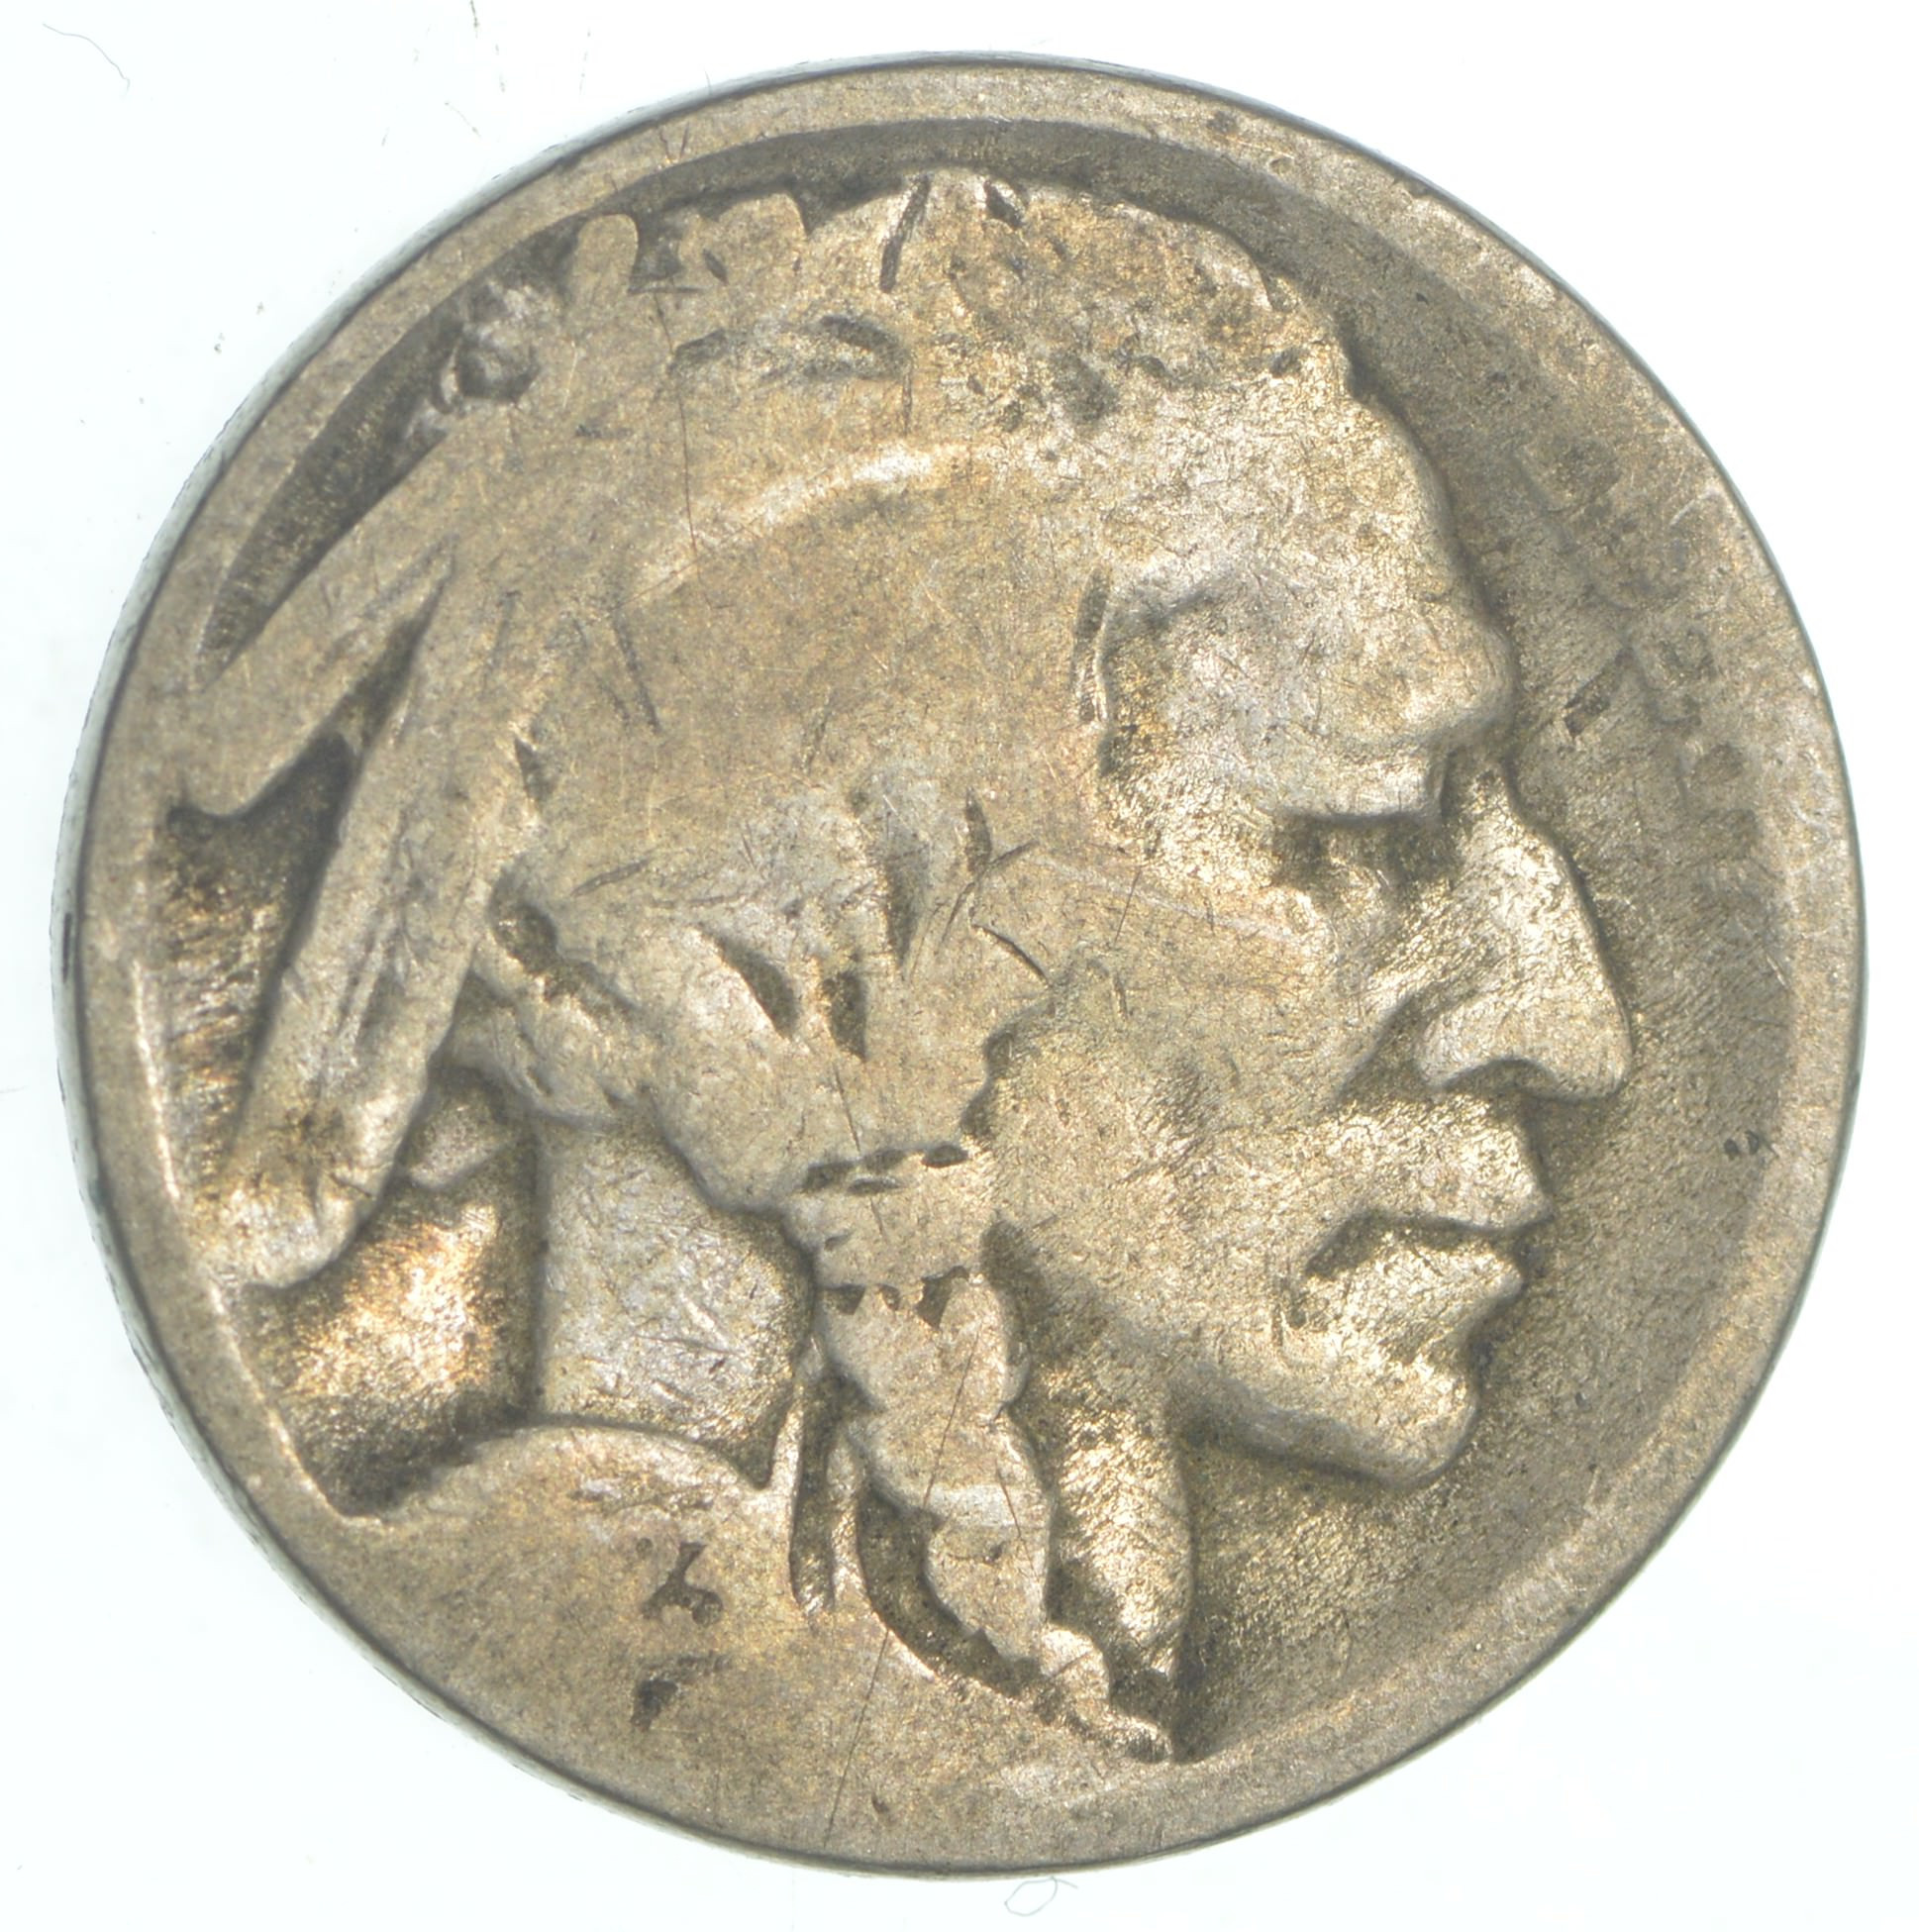 Indian Head Buffalo Nickel Best Of Better 1923 S Buffalo Indian Head Us Nickel Of Gorgeous 50 Ideas Indian Head Buffalo Nickel